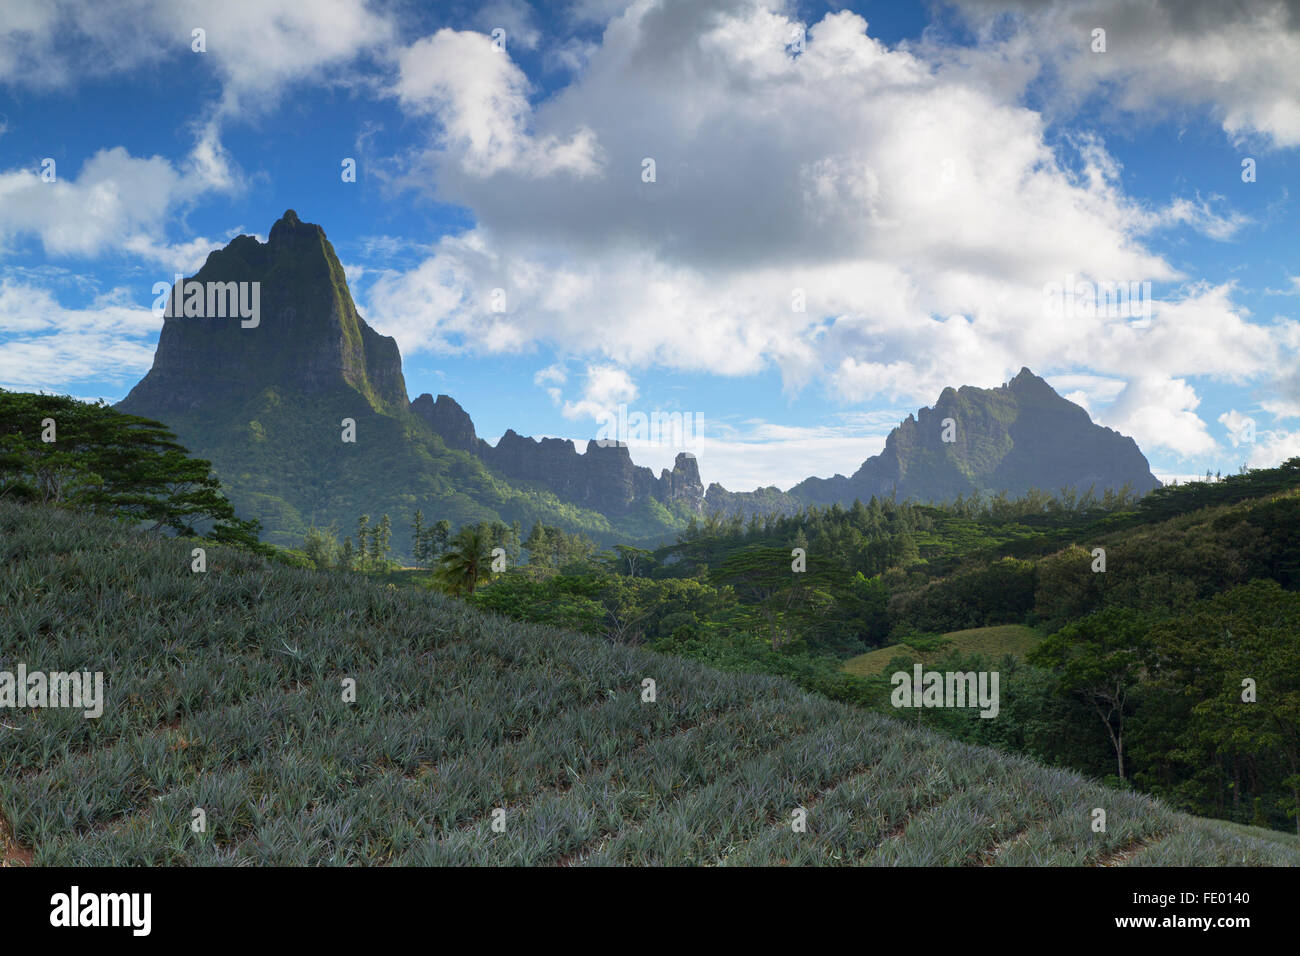 Pineapple plantation in Paopao Valley, Mo'orea, Society Islands, French Polynesia - Stock Image